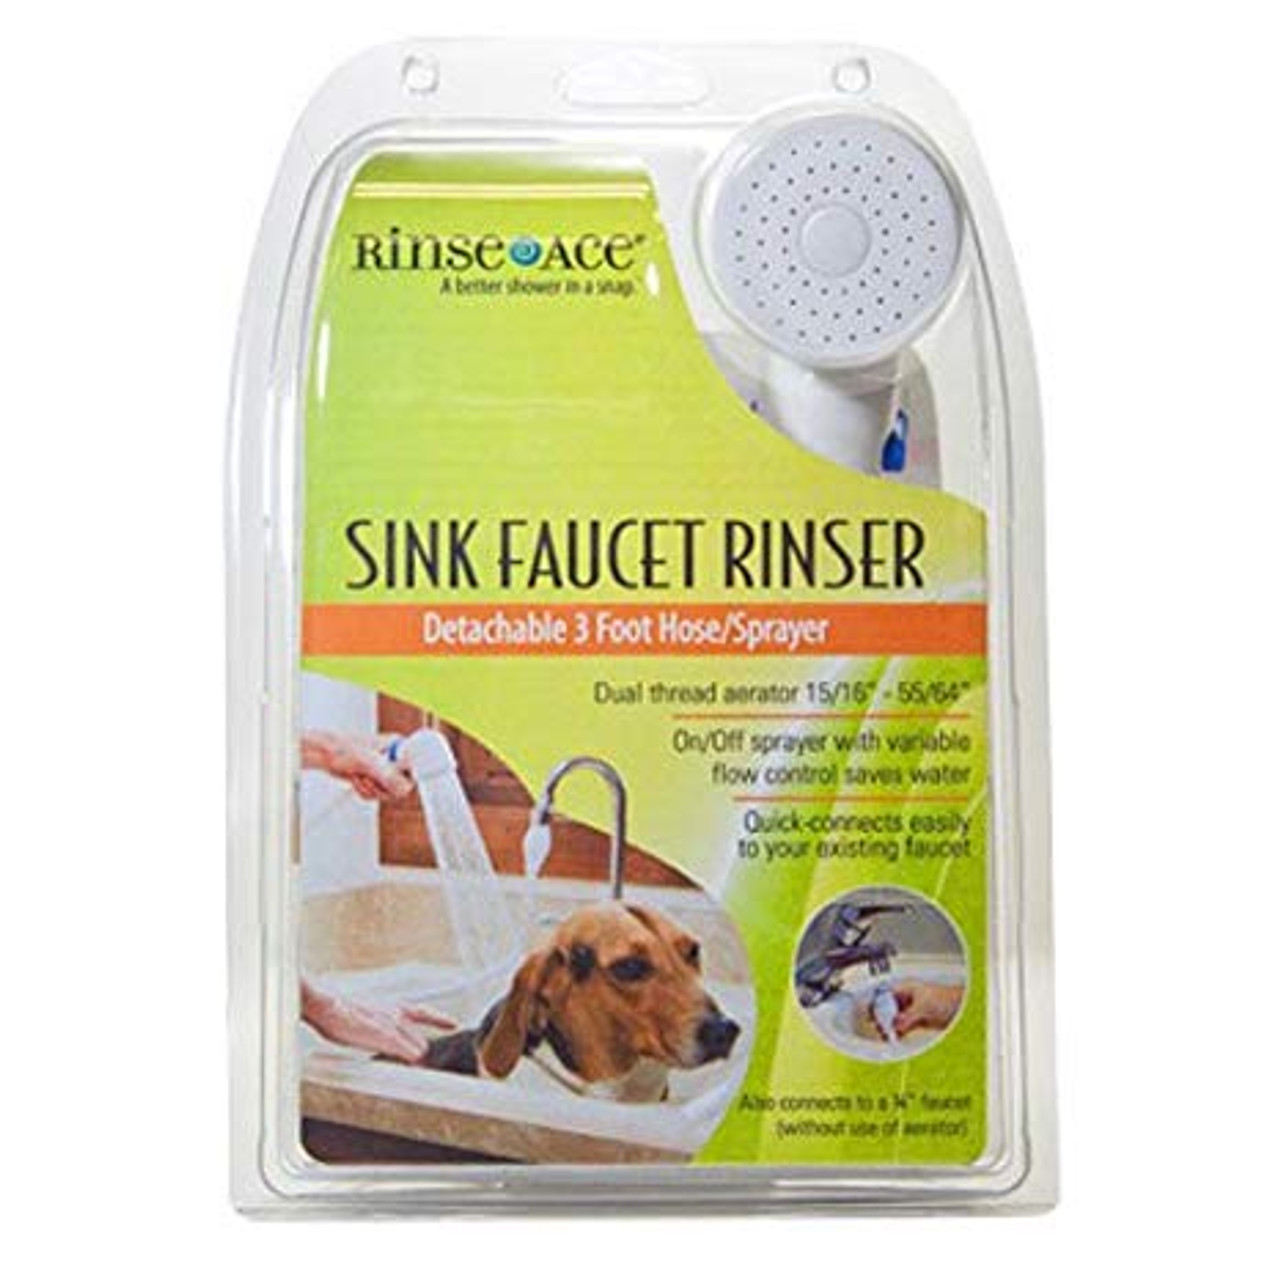 rinse ace sink faucet rinser 3 hose sprayer with variable flow